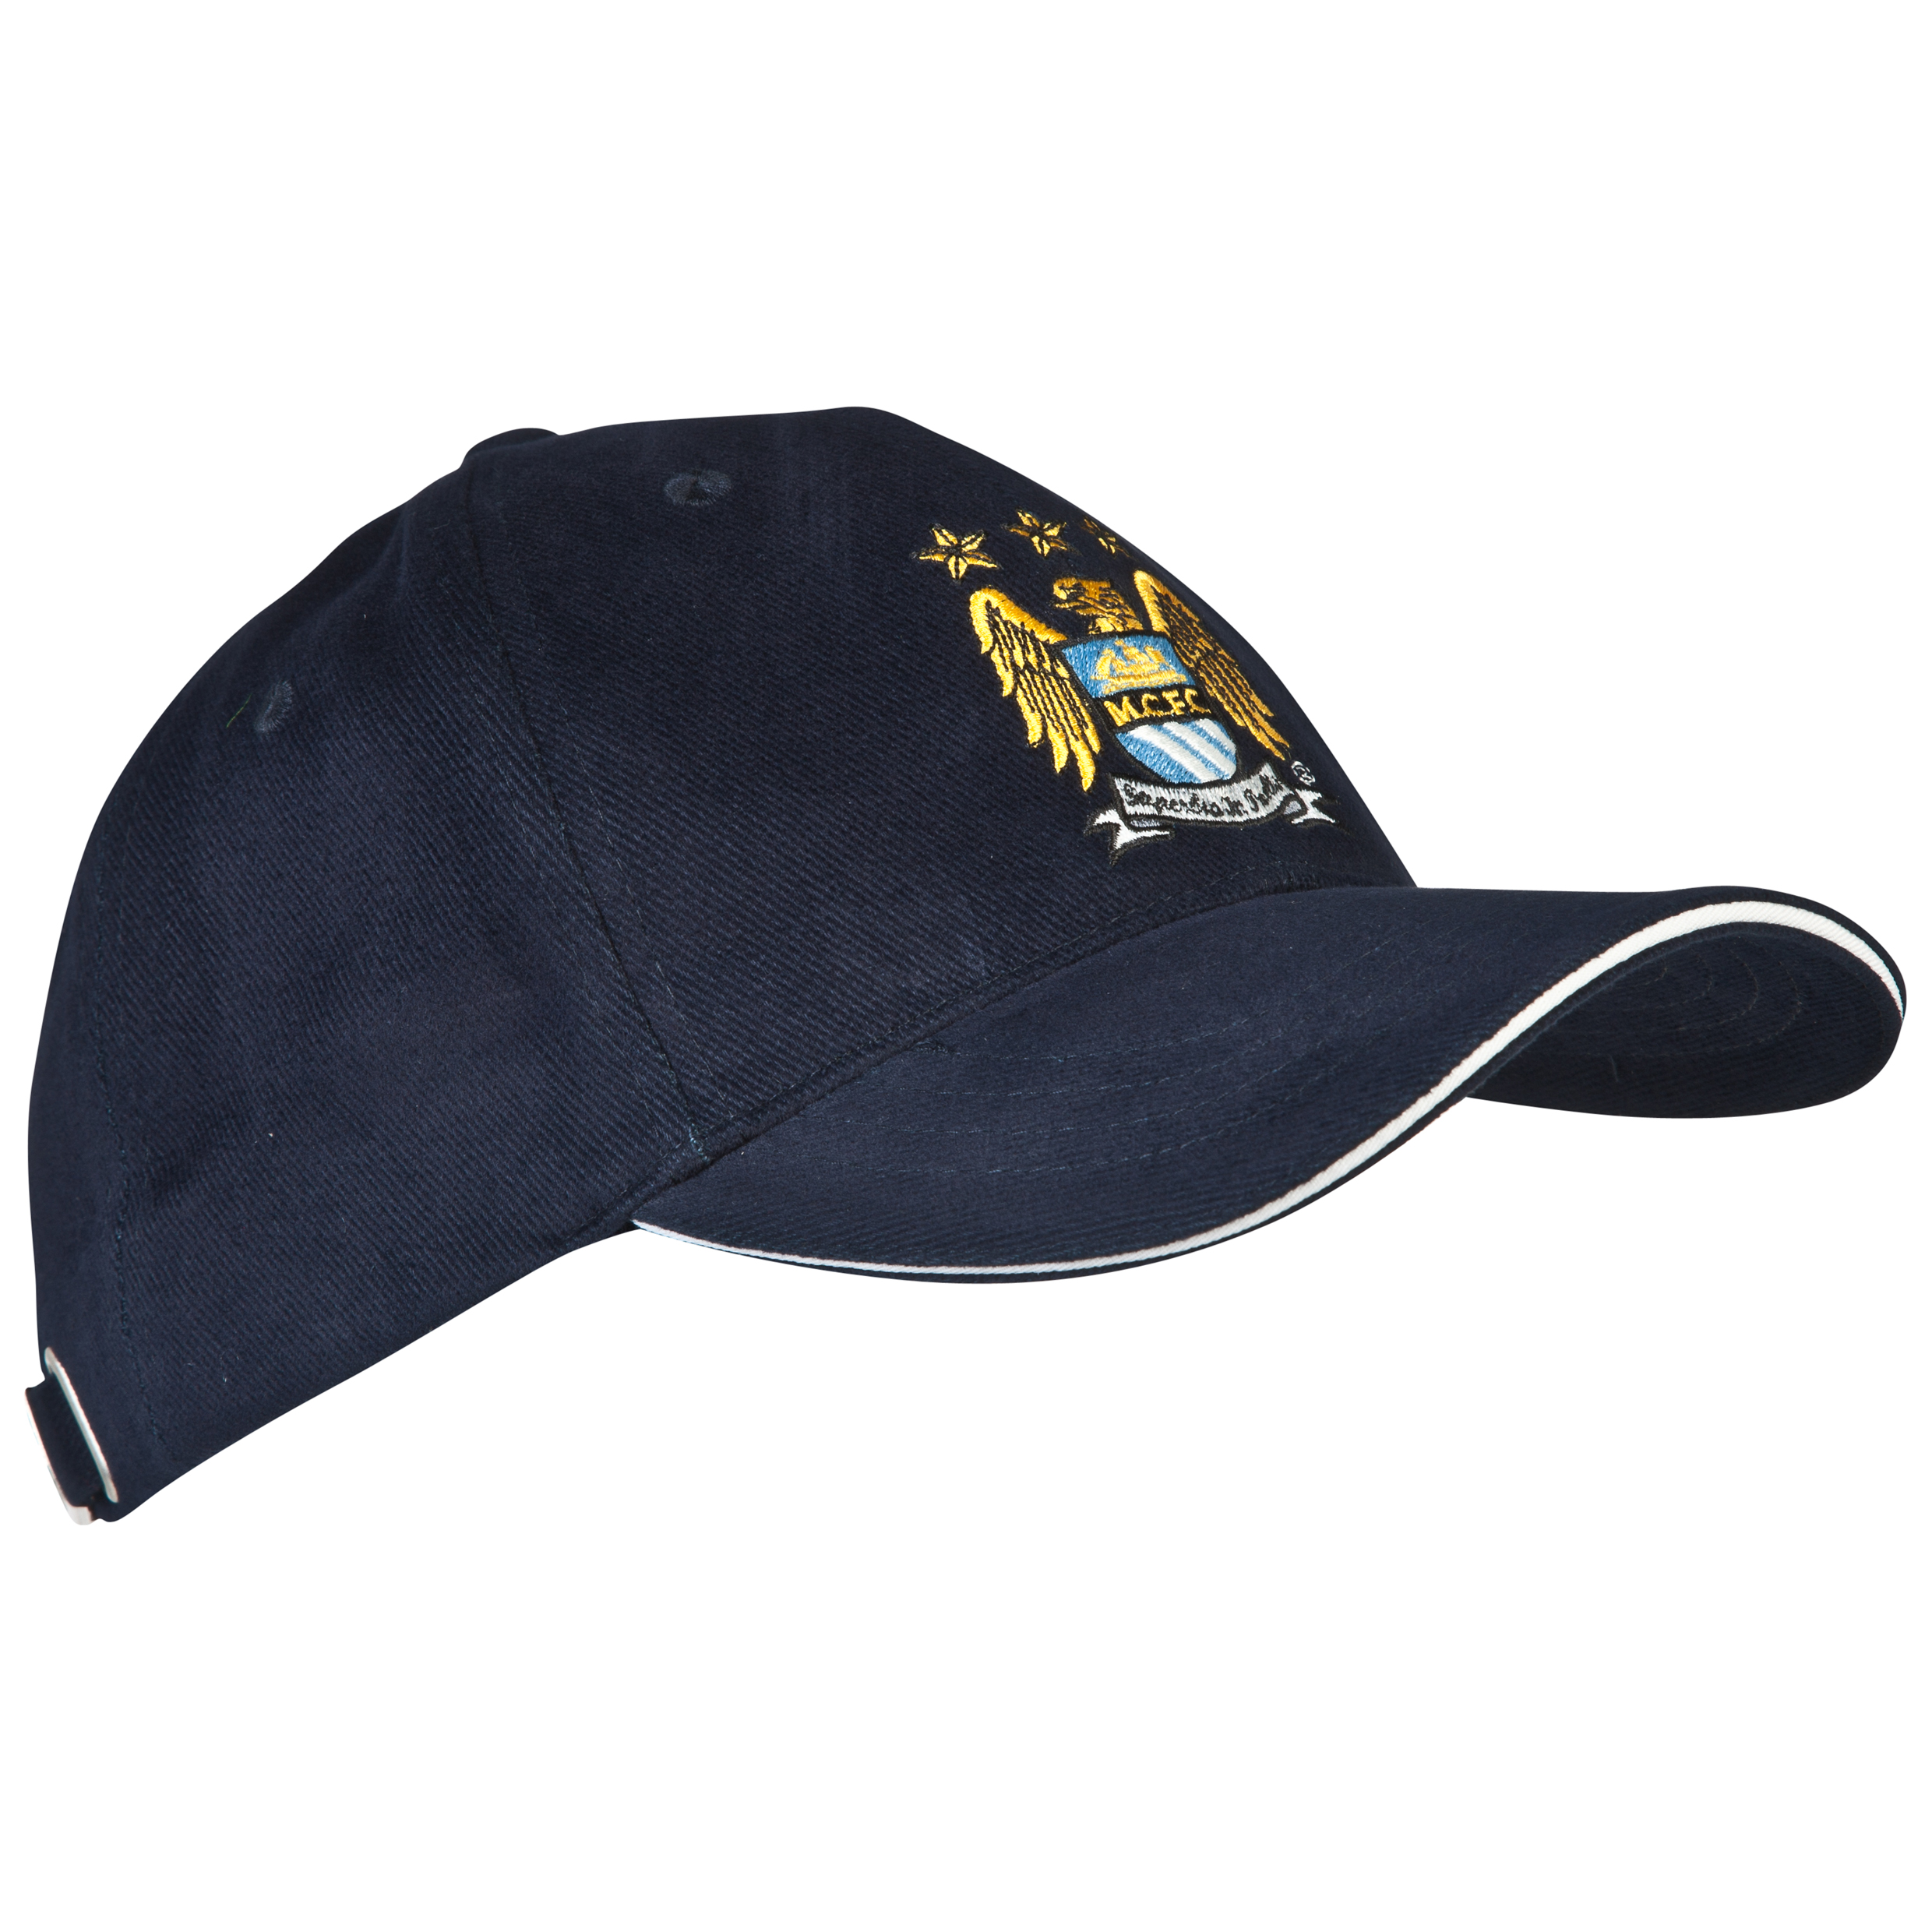 Manchester City UEFA Champions League Baseball Cap Navy